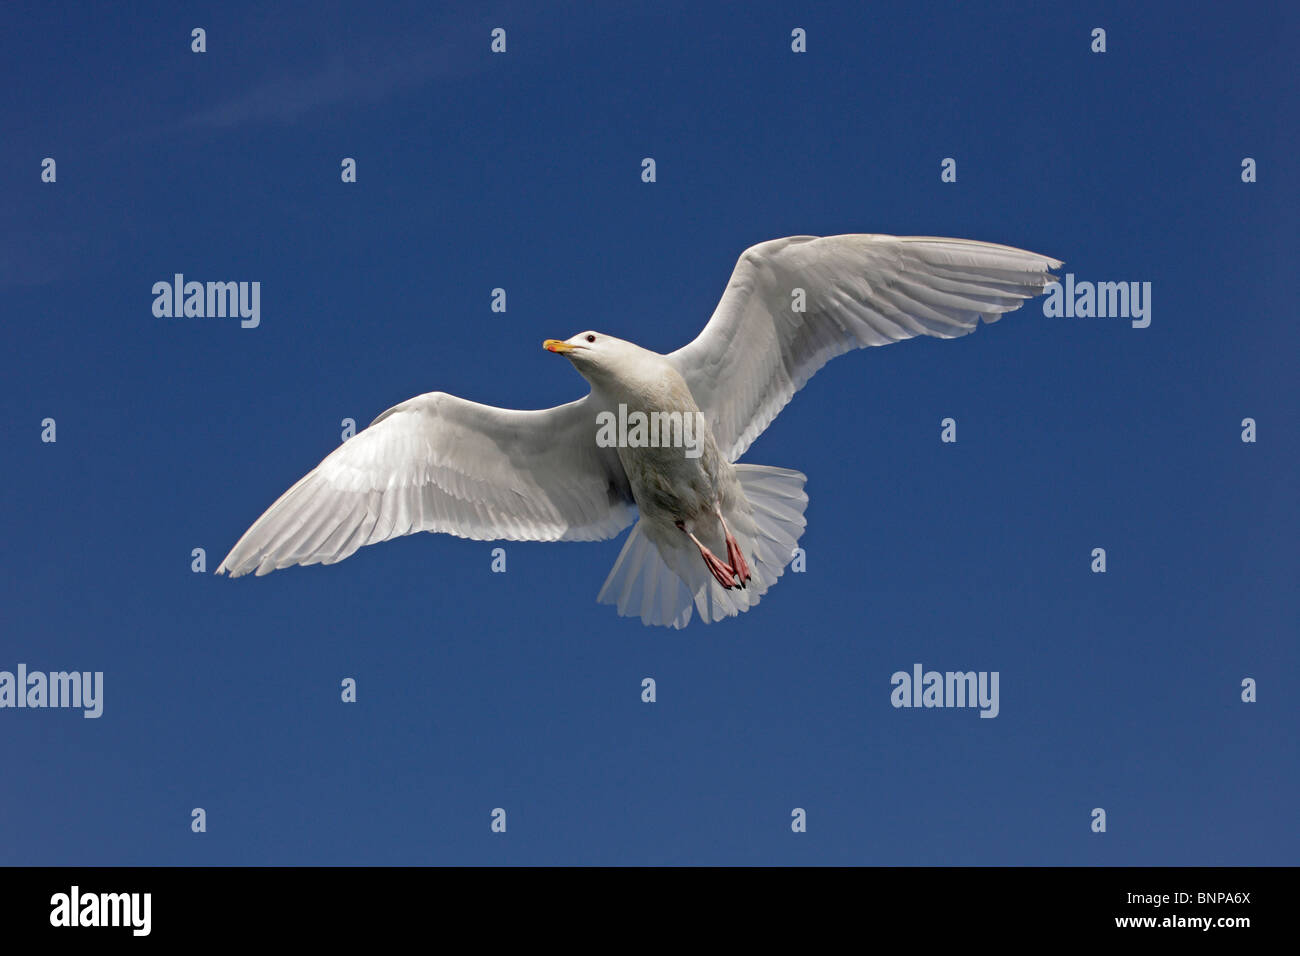 A Glaucous-winged Gull in flight - Stock Image